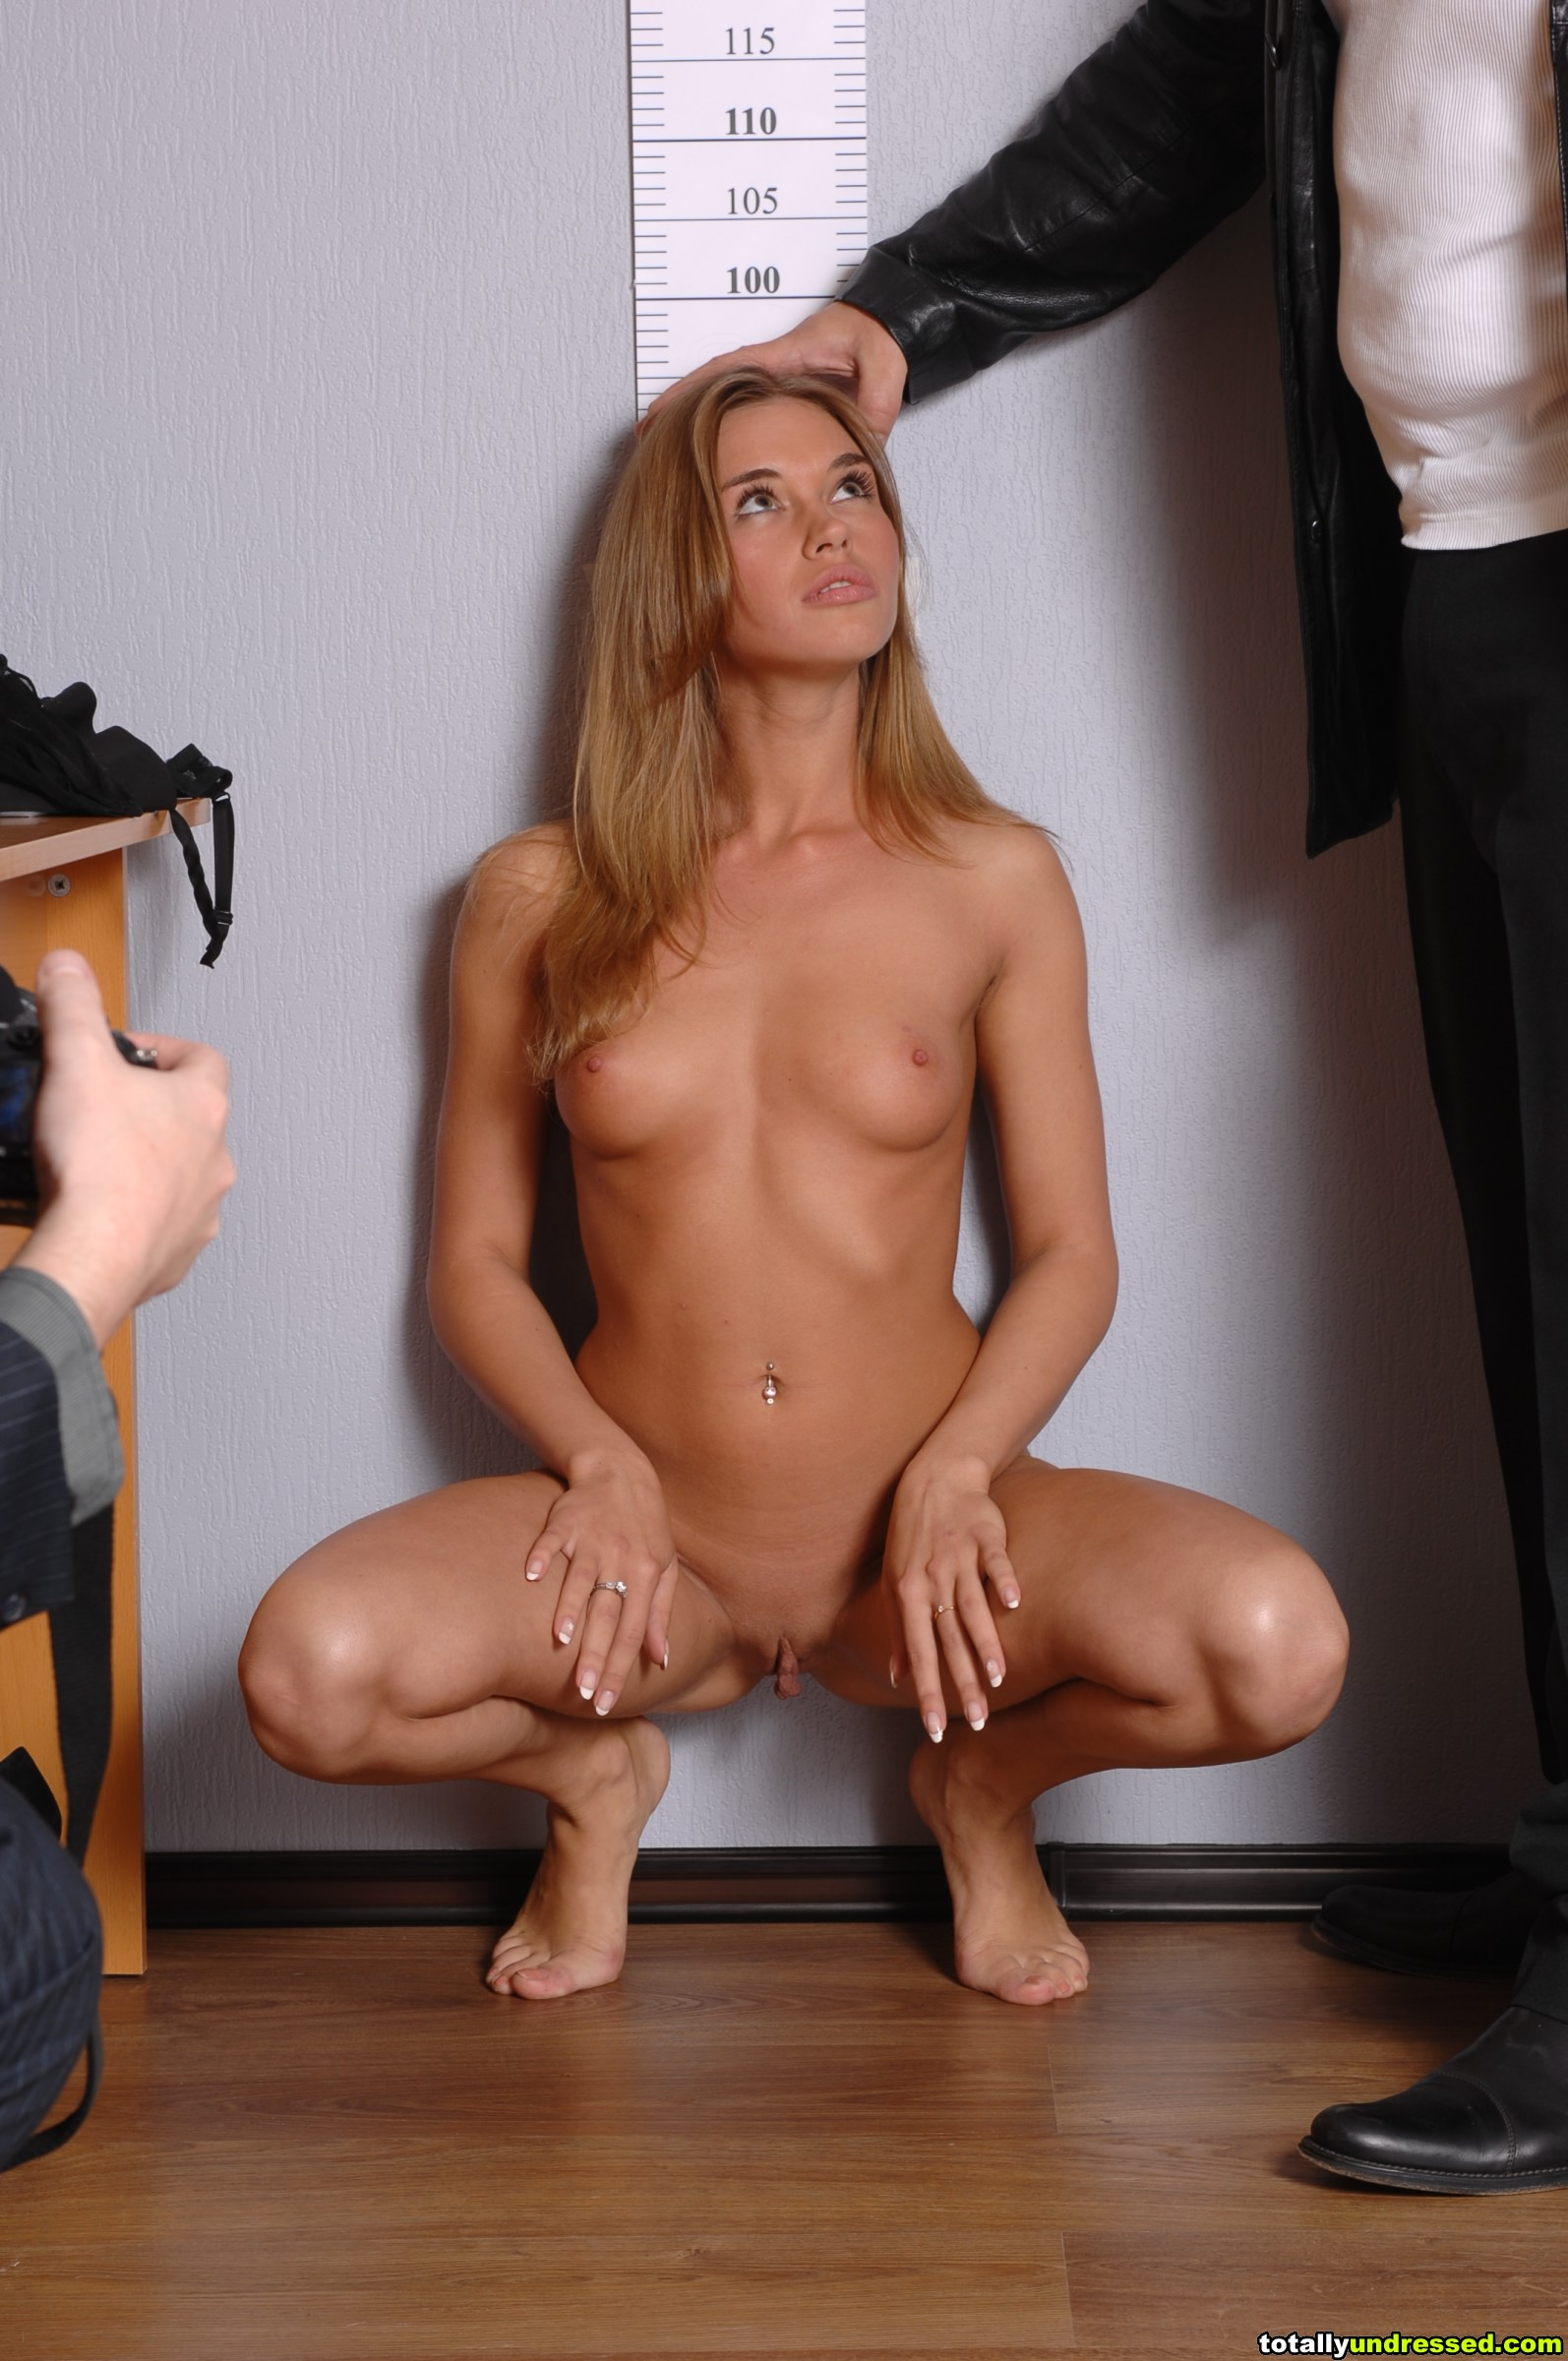 Job Interview Totally Undressed Nude